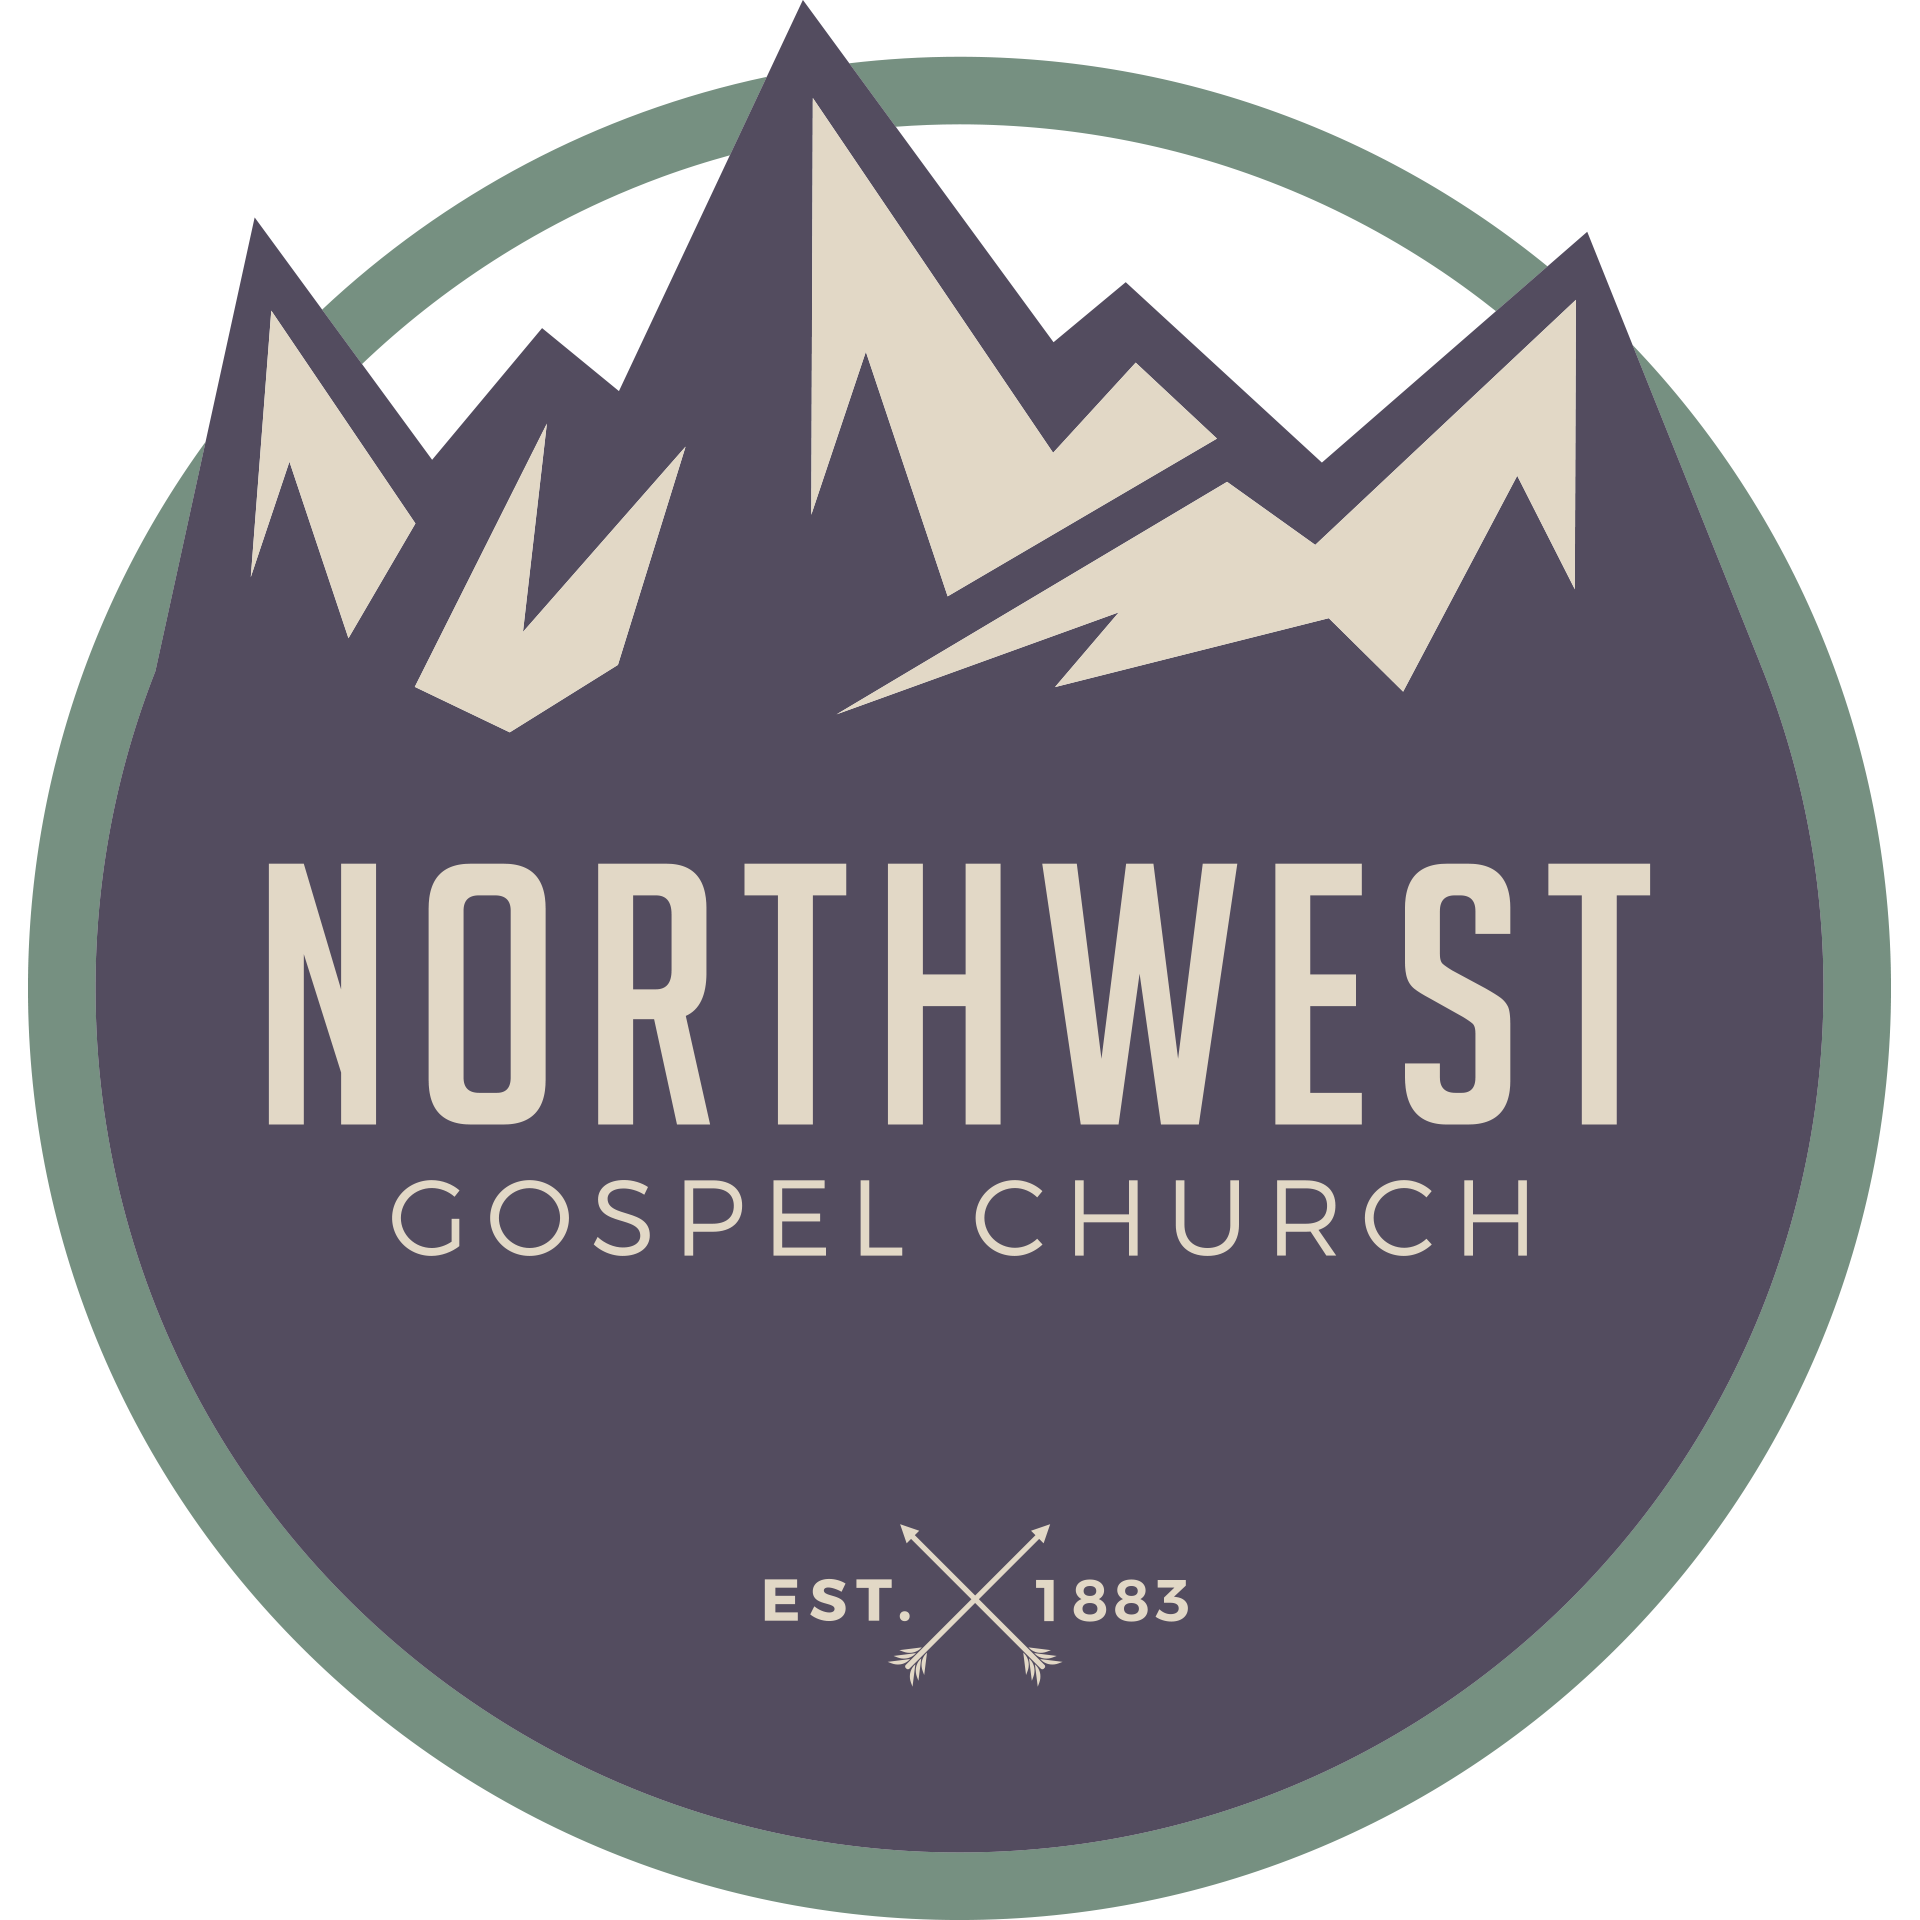 Camas/Washougal Sermons podcast contains the weekly sermon preached. You can always expect our teaching team to preach expositional sermons based in a single text.